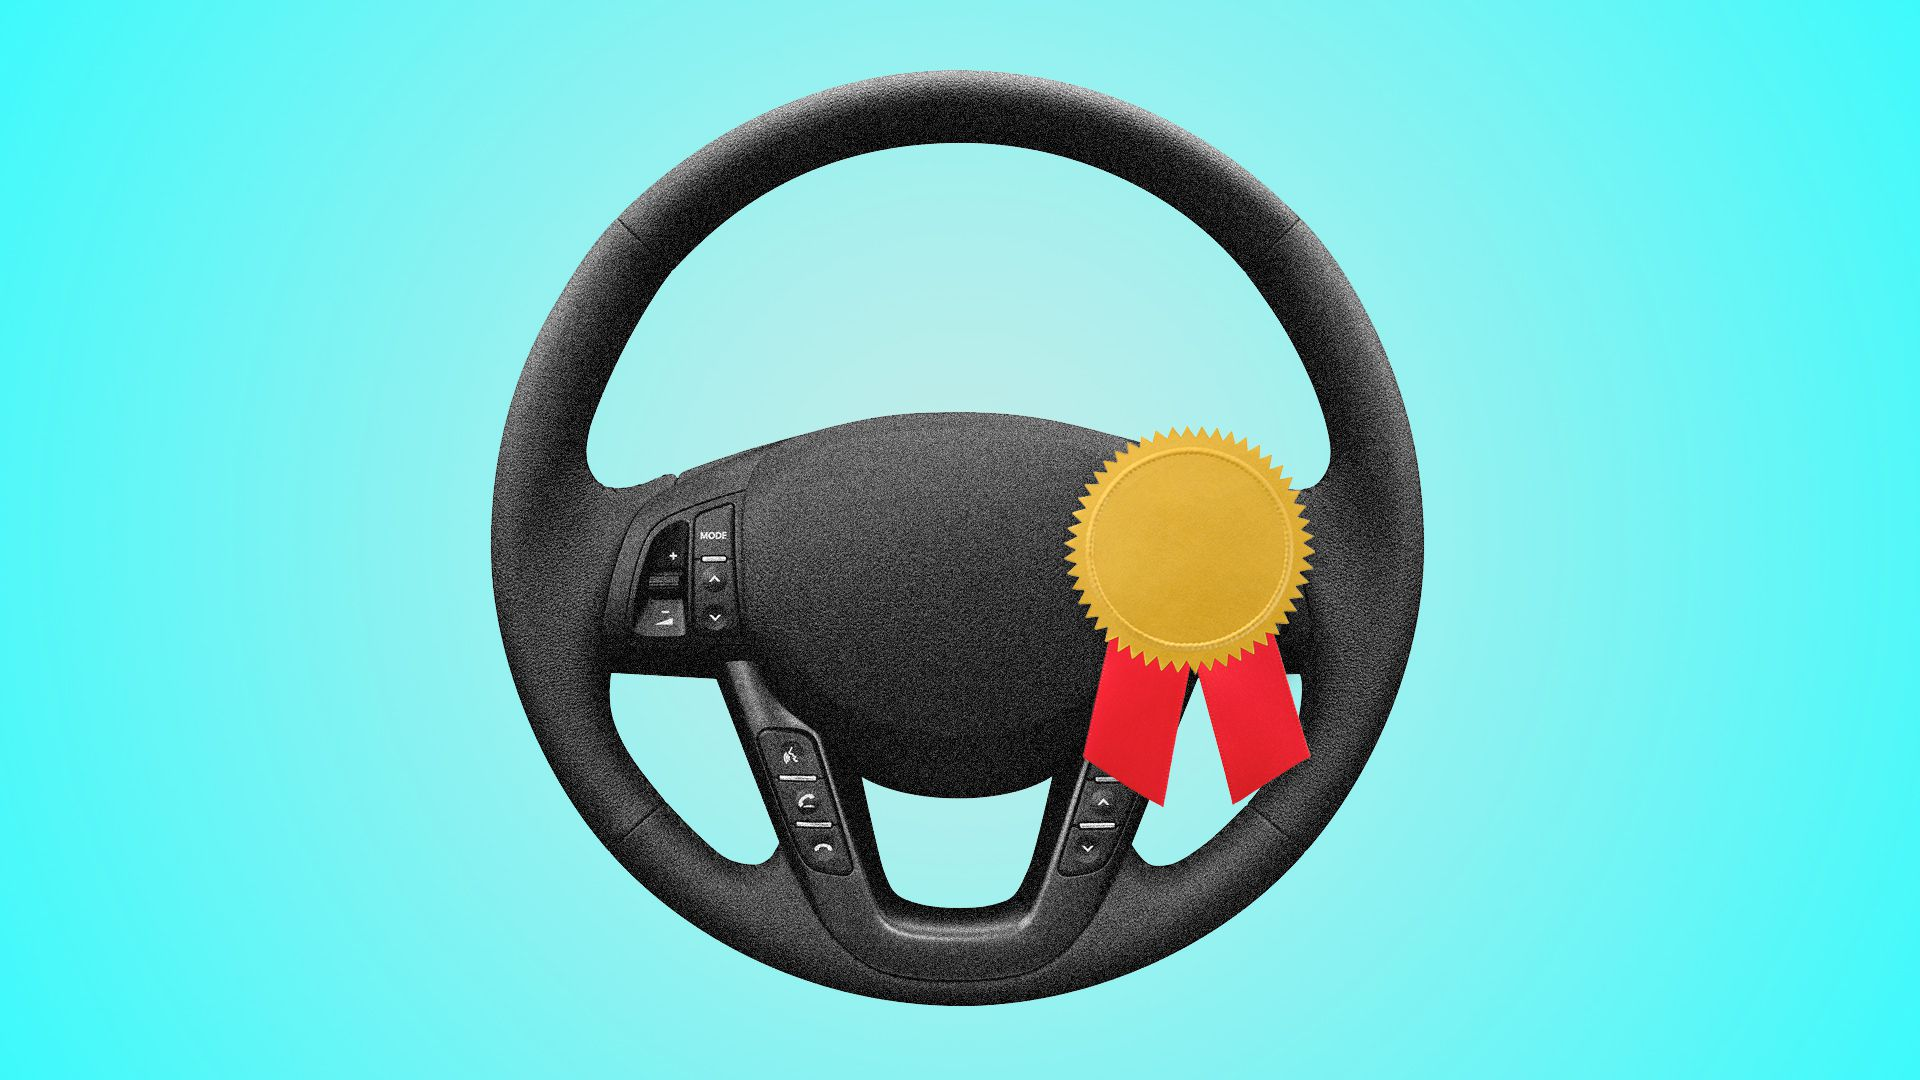 Illustration of a steering wheel with a gold medal pinned to it.